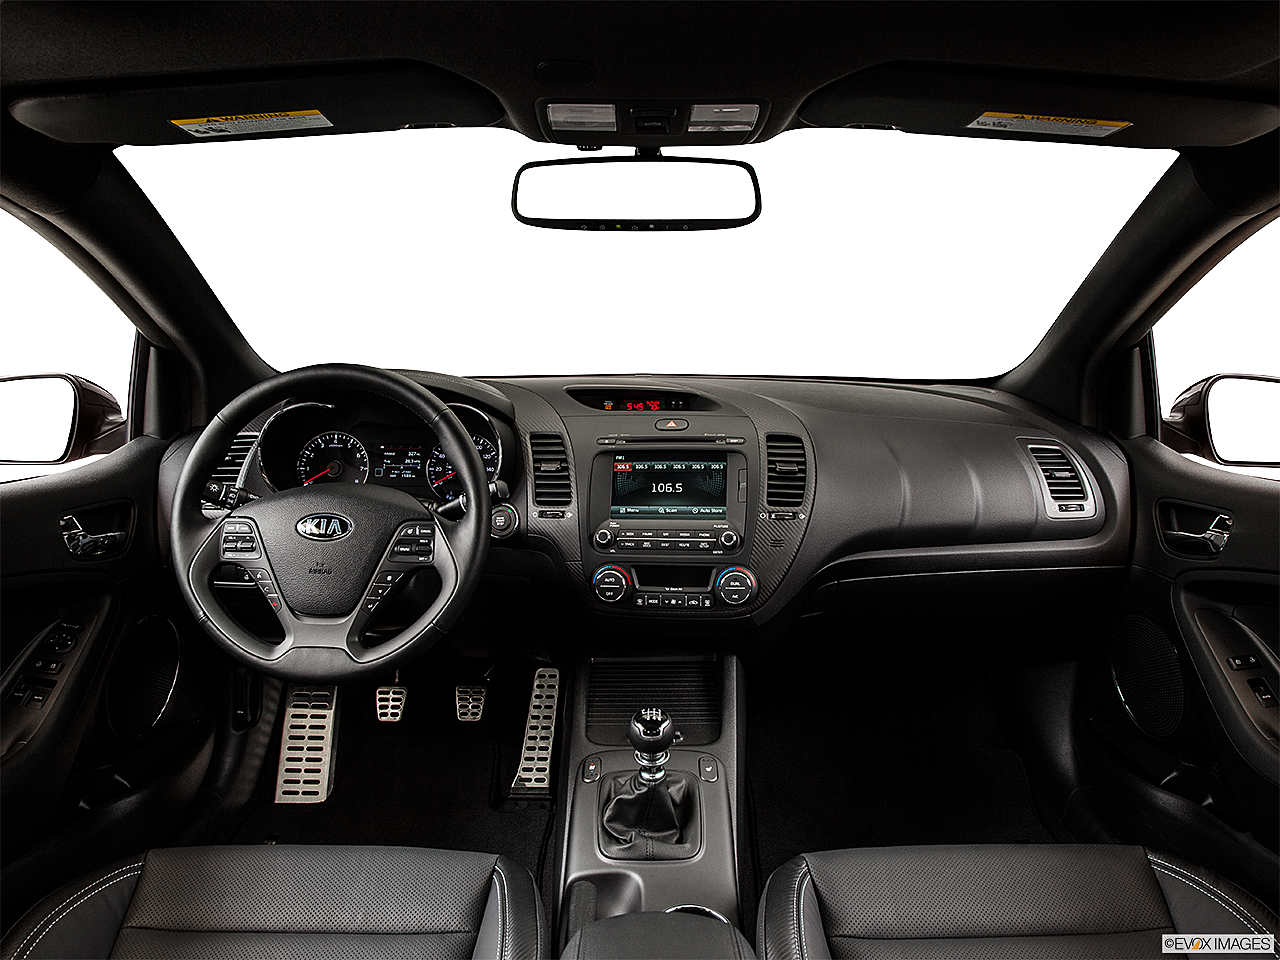 2014 Kia Forte Koup Sx 2dr Coupe 6m Research Groovecar Fuse Box Centered Wide Dash Shot